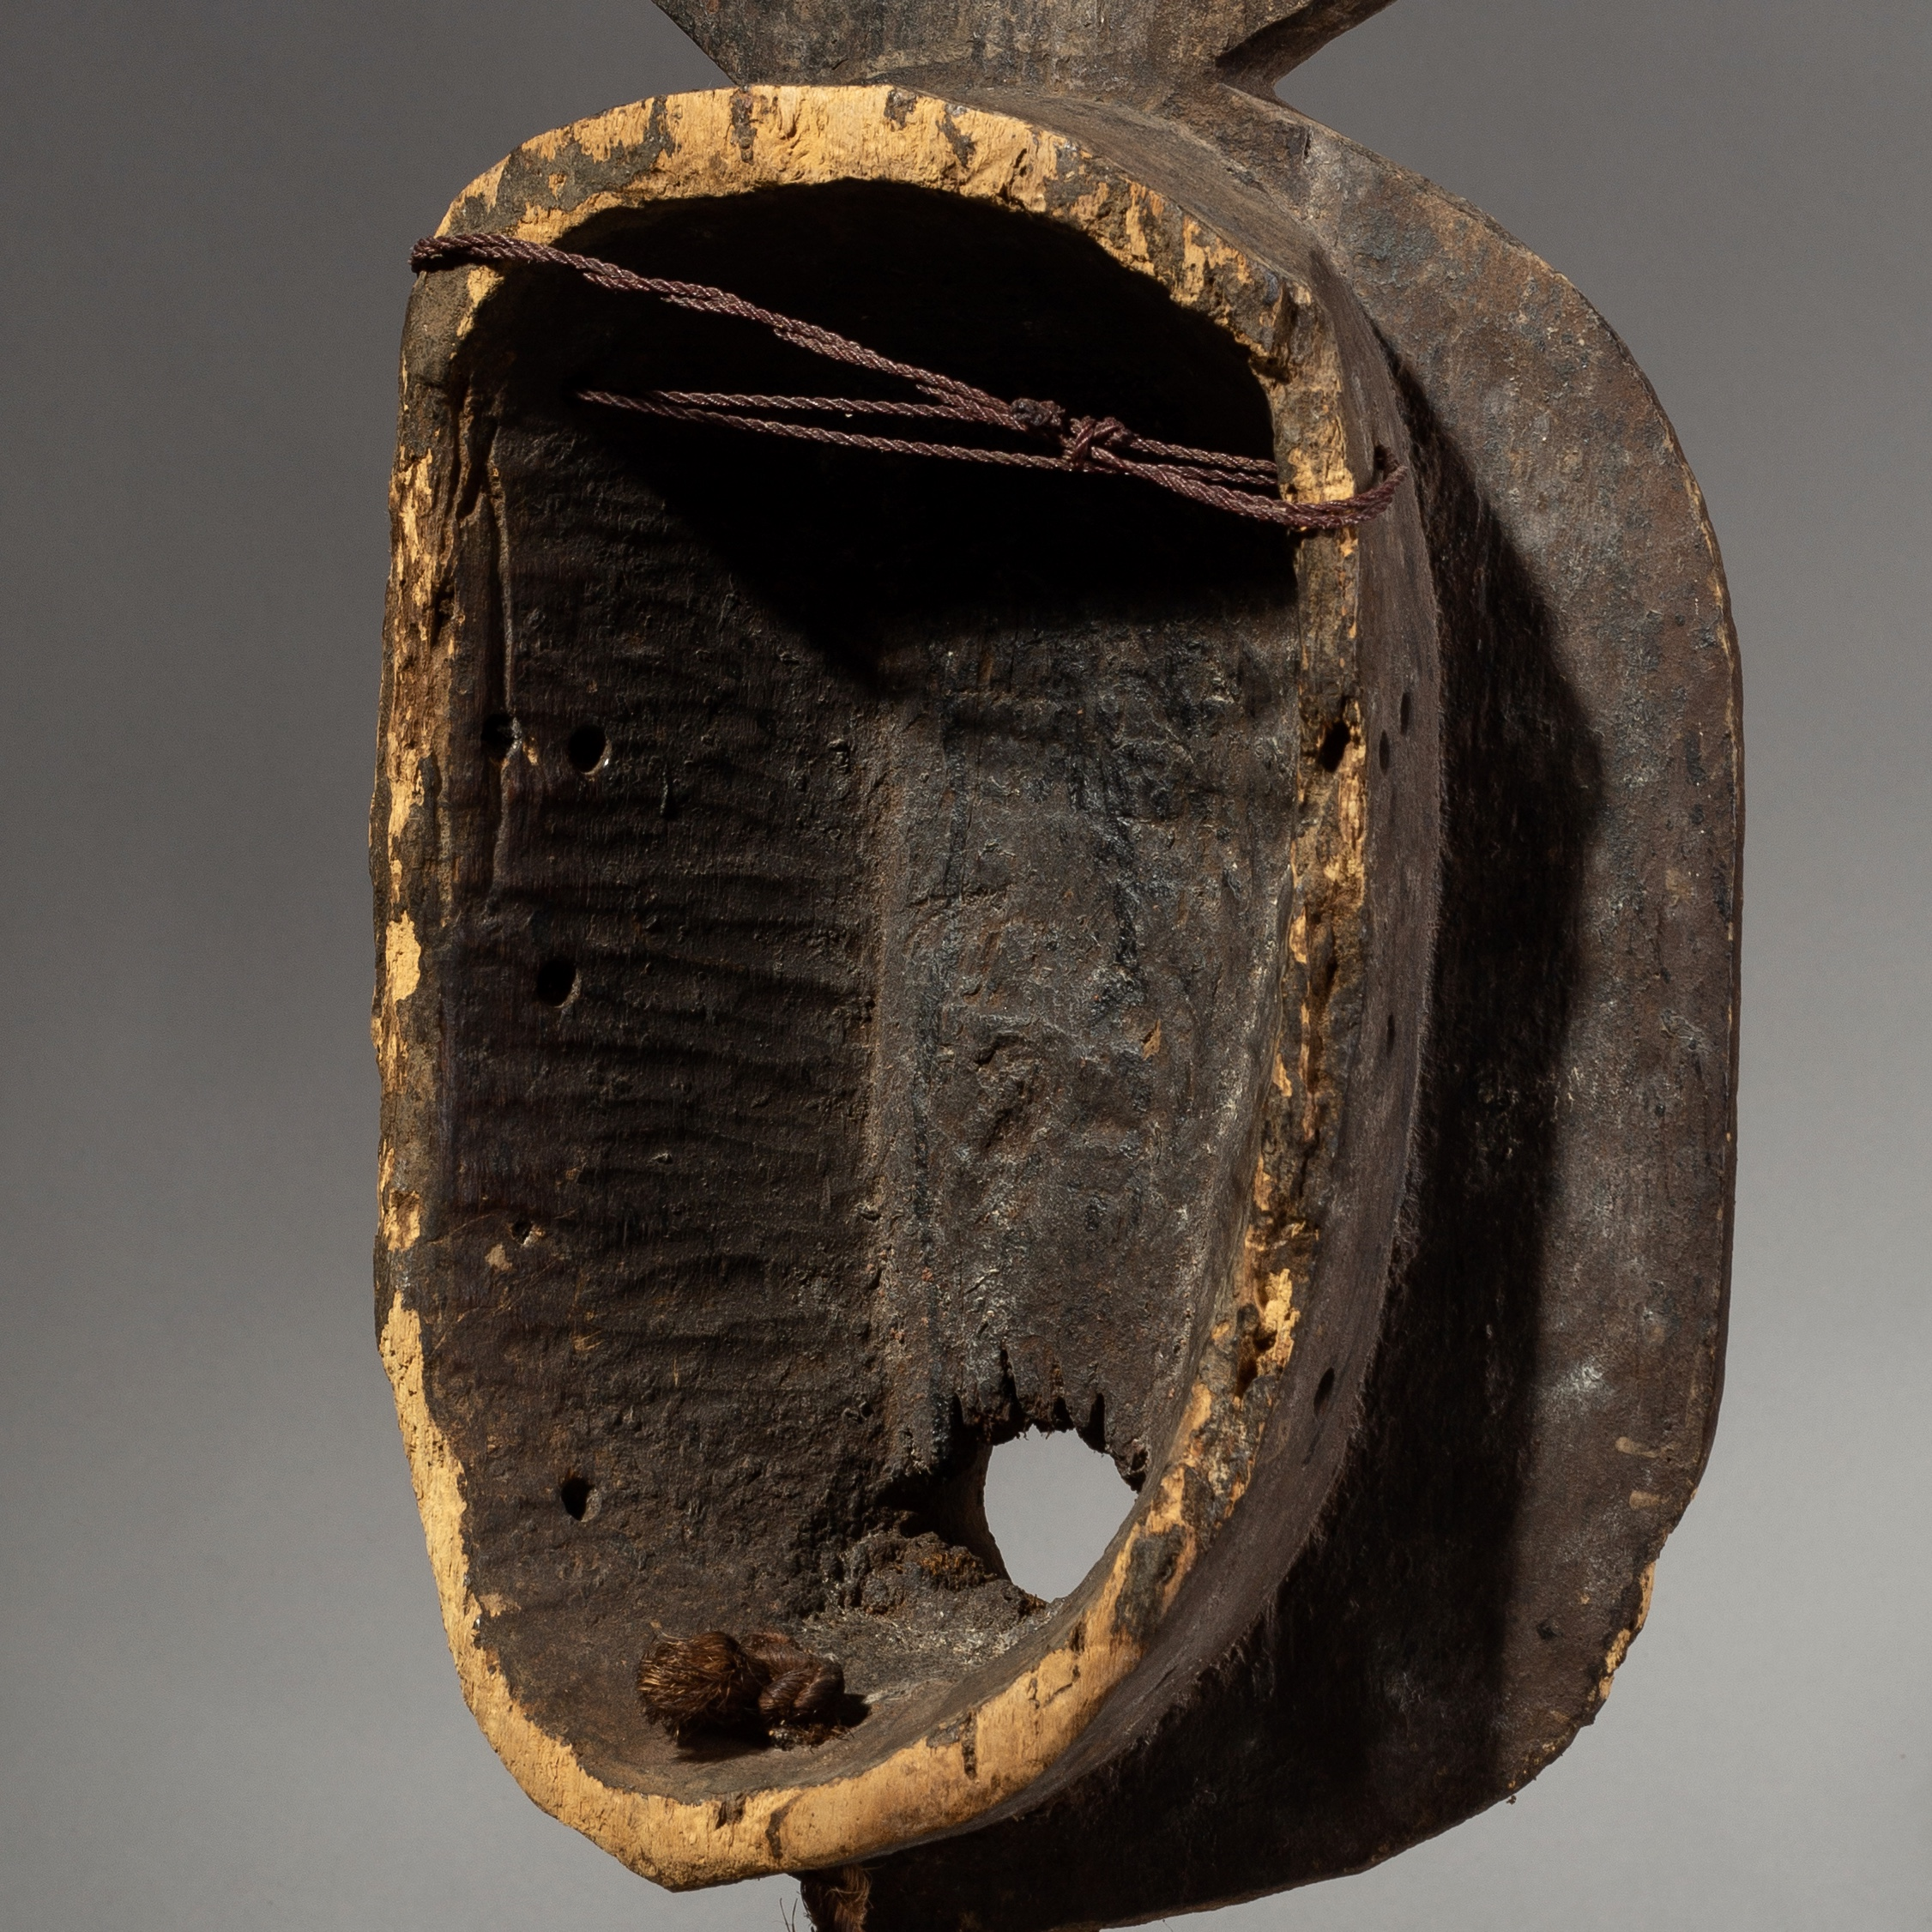 SD AN ENCRUSTED, OLD, MOSSI TRIBE MASK ( No 1938 )